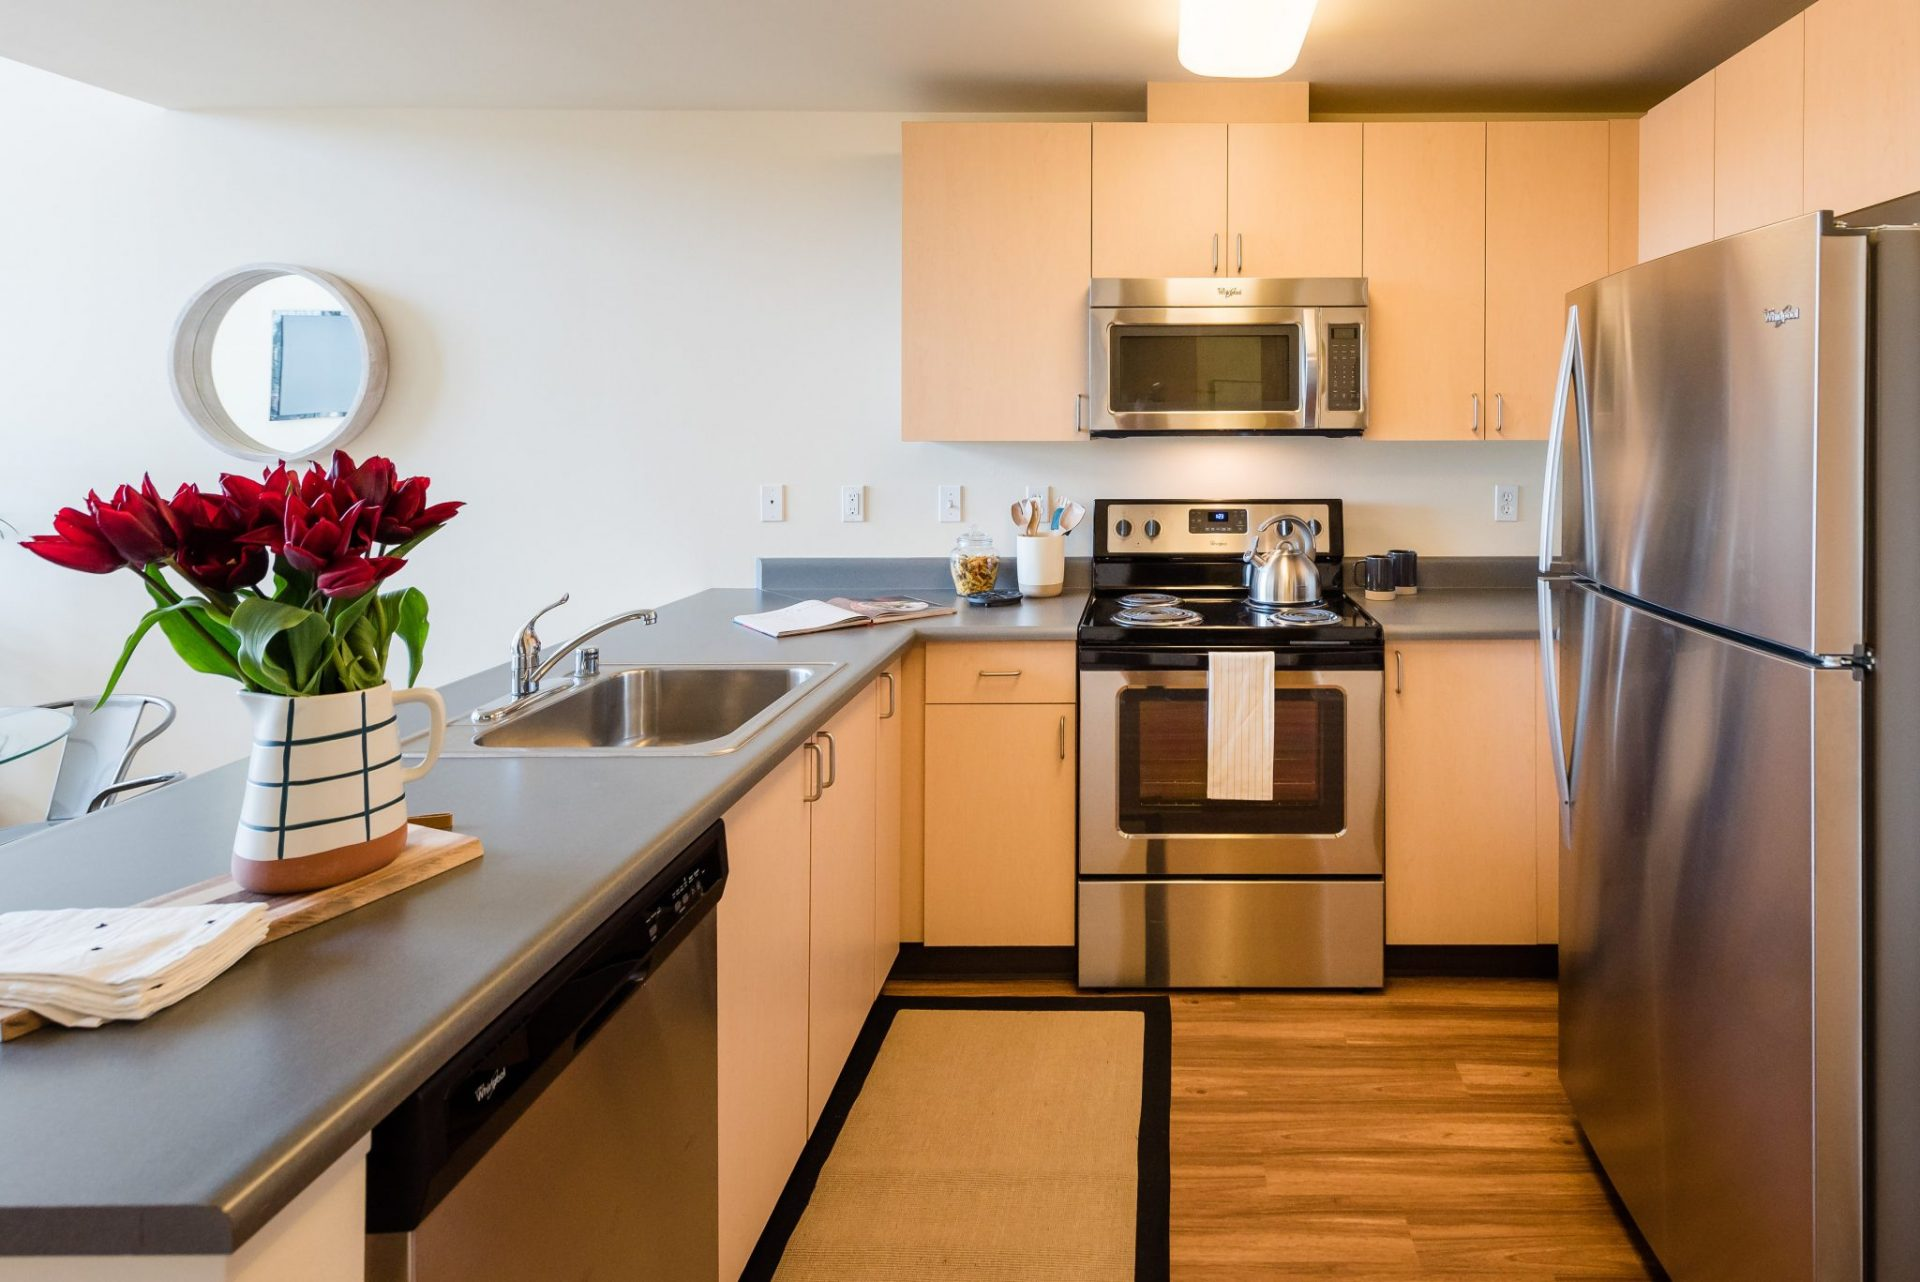 Modern Kitchens At Thornton Place Apartments In Seattle, WA